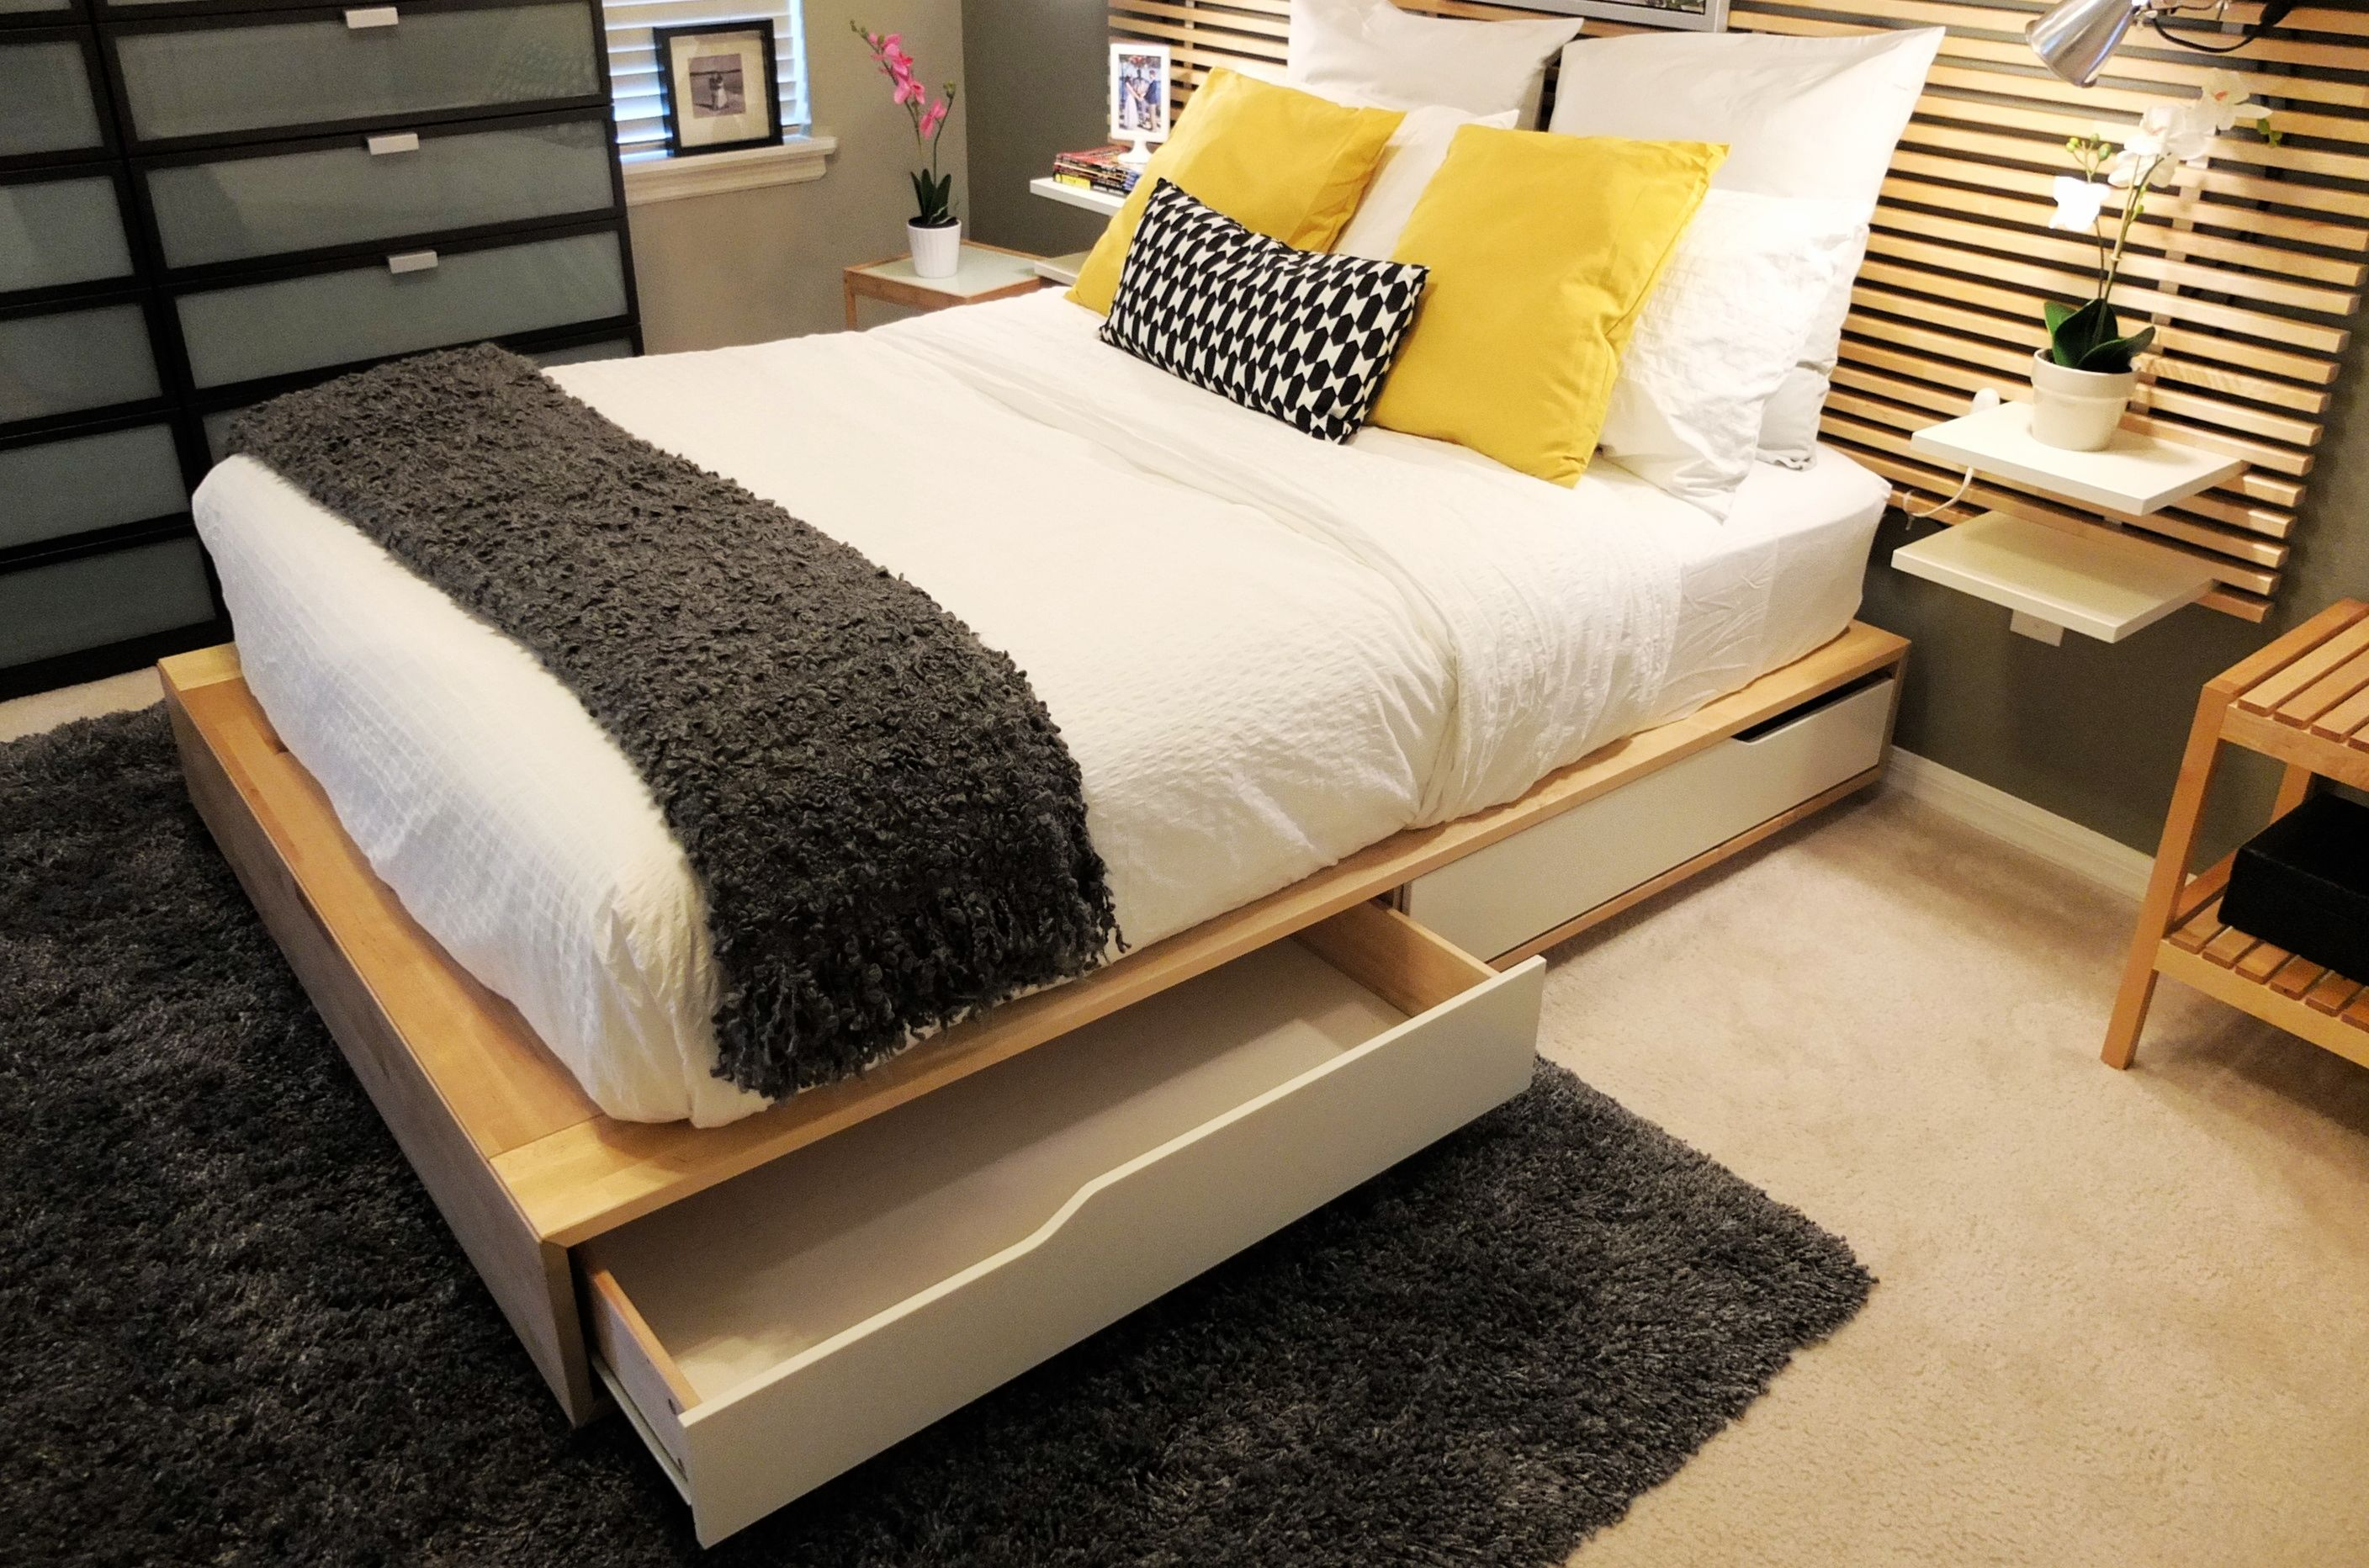 Home Furniture Store Modern Furnishings Decor Ikea Mandal Bed Small Bedroom Simple Bedroom